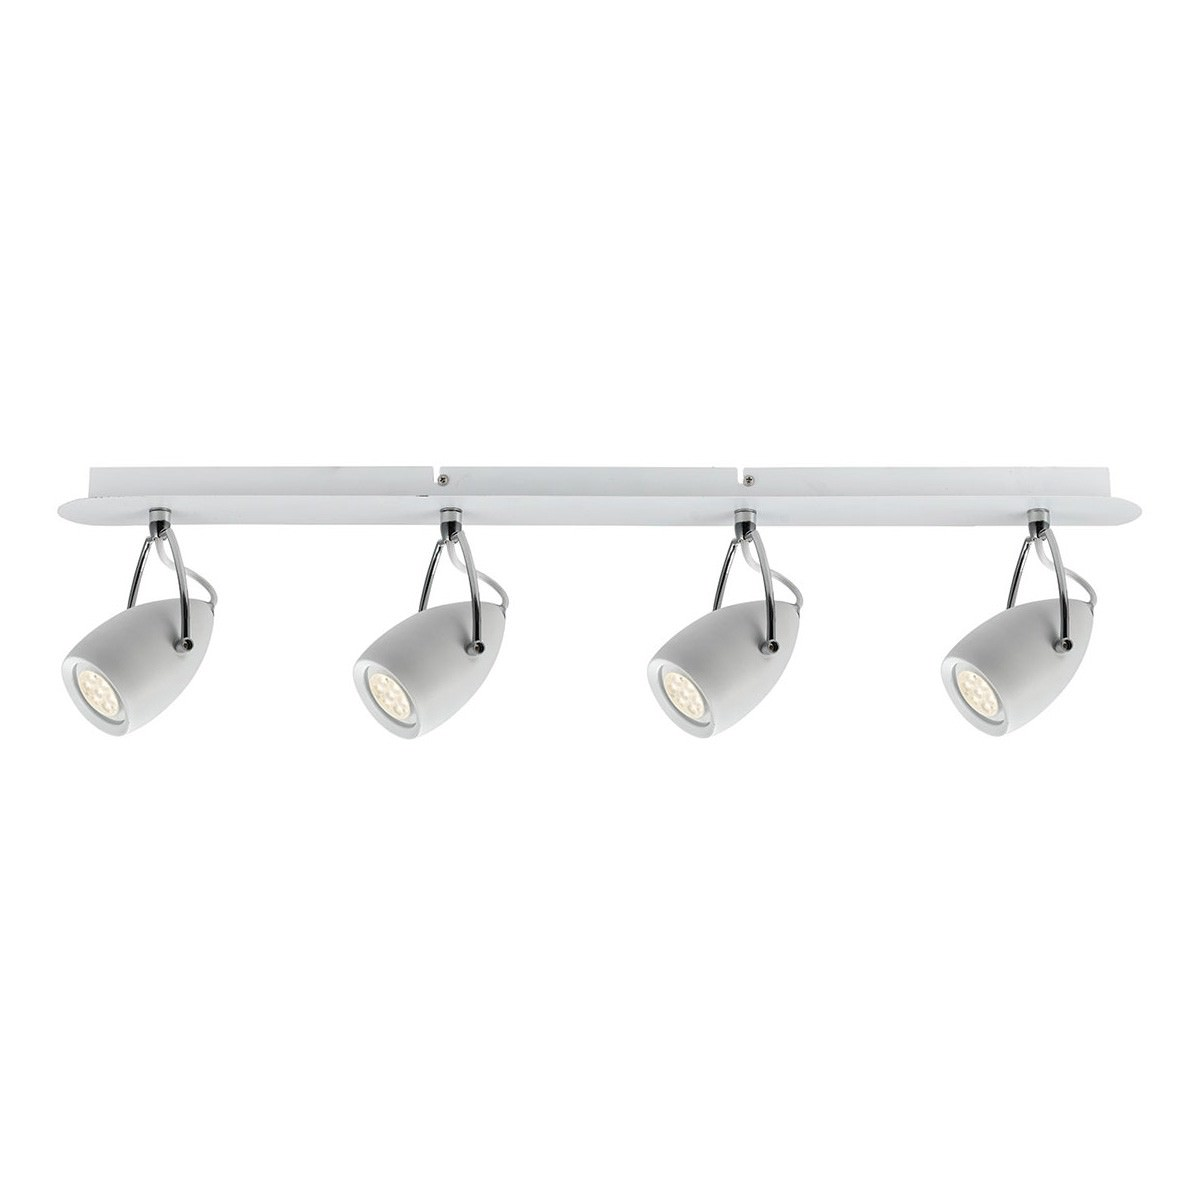 Tolosa LED Spotlight, 4 Light, White